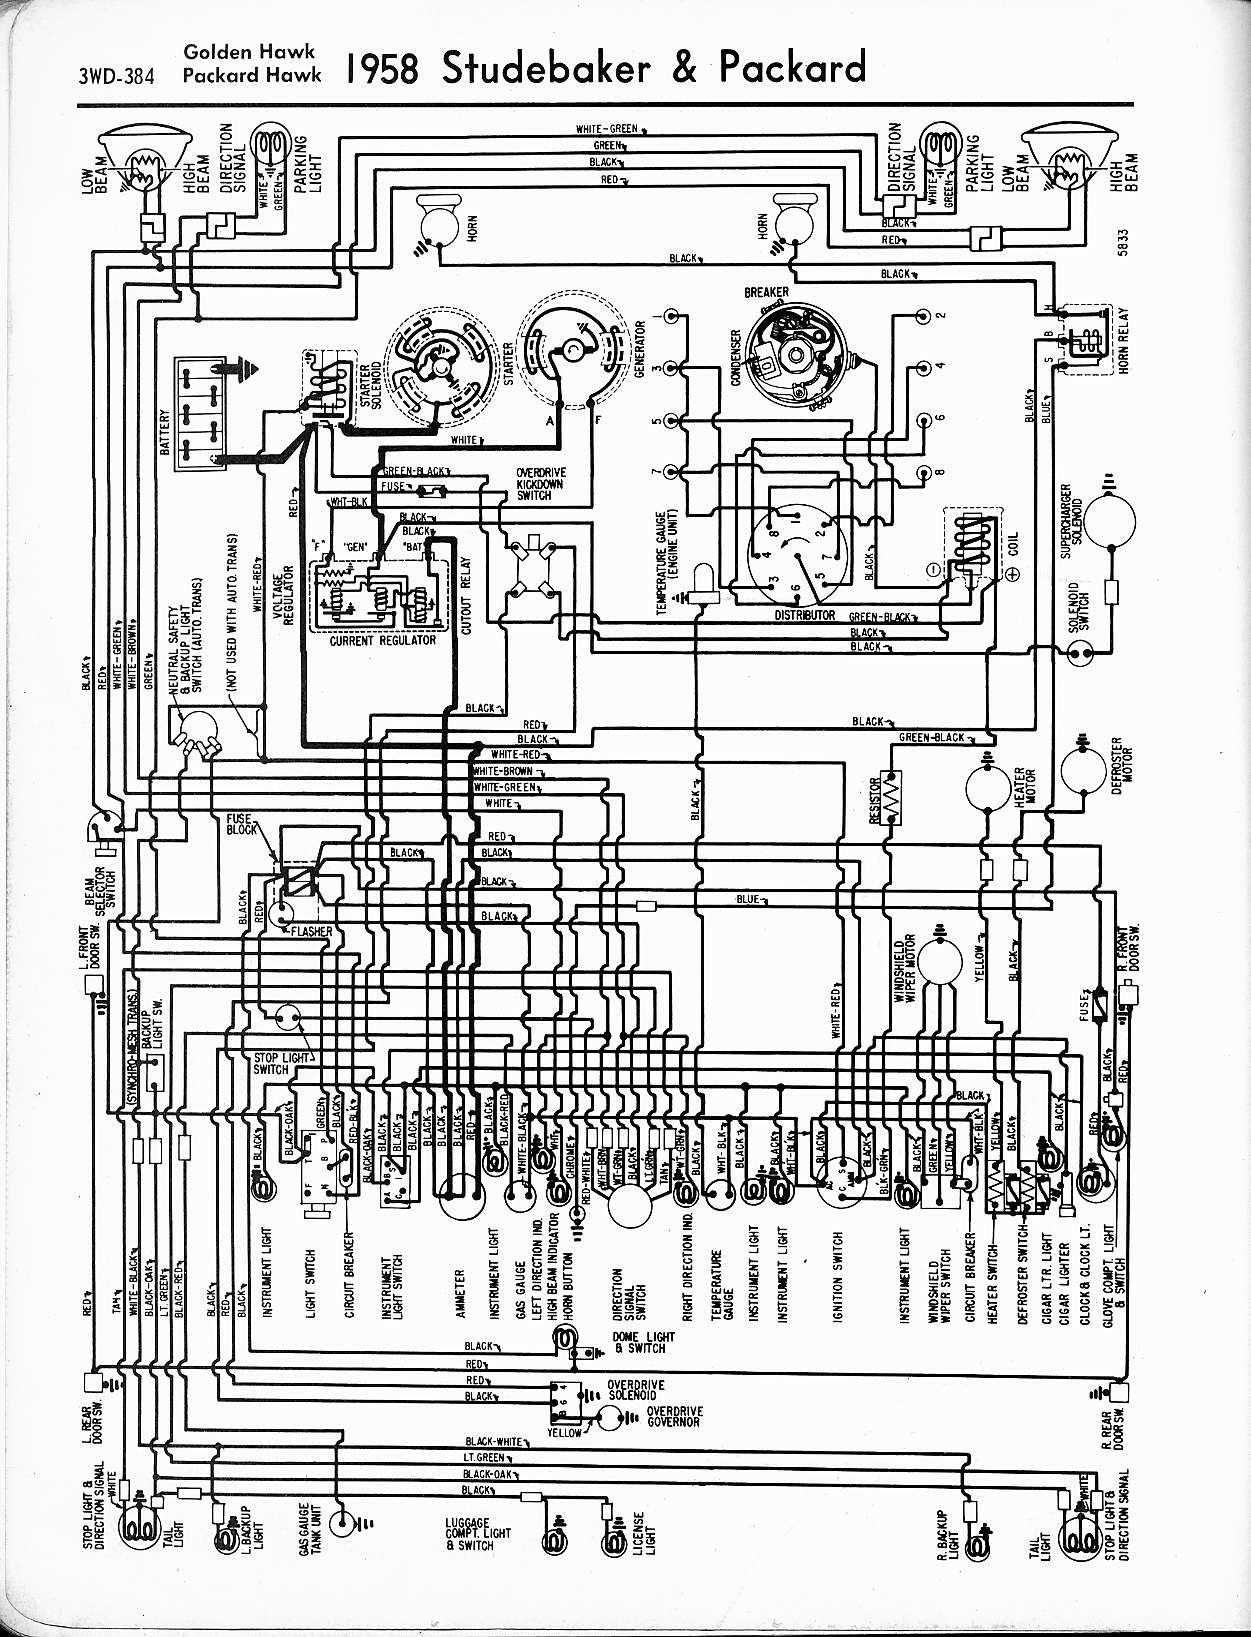 packard wiring diagrams the old car manual project rh oldcarmanualproject com 1951 packard wiring diagram packard electric motor wiring diagram